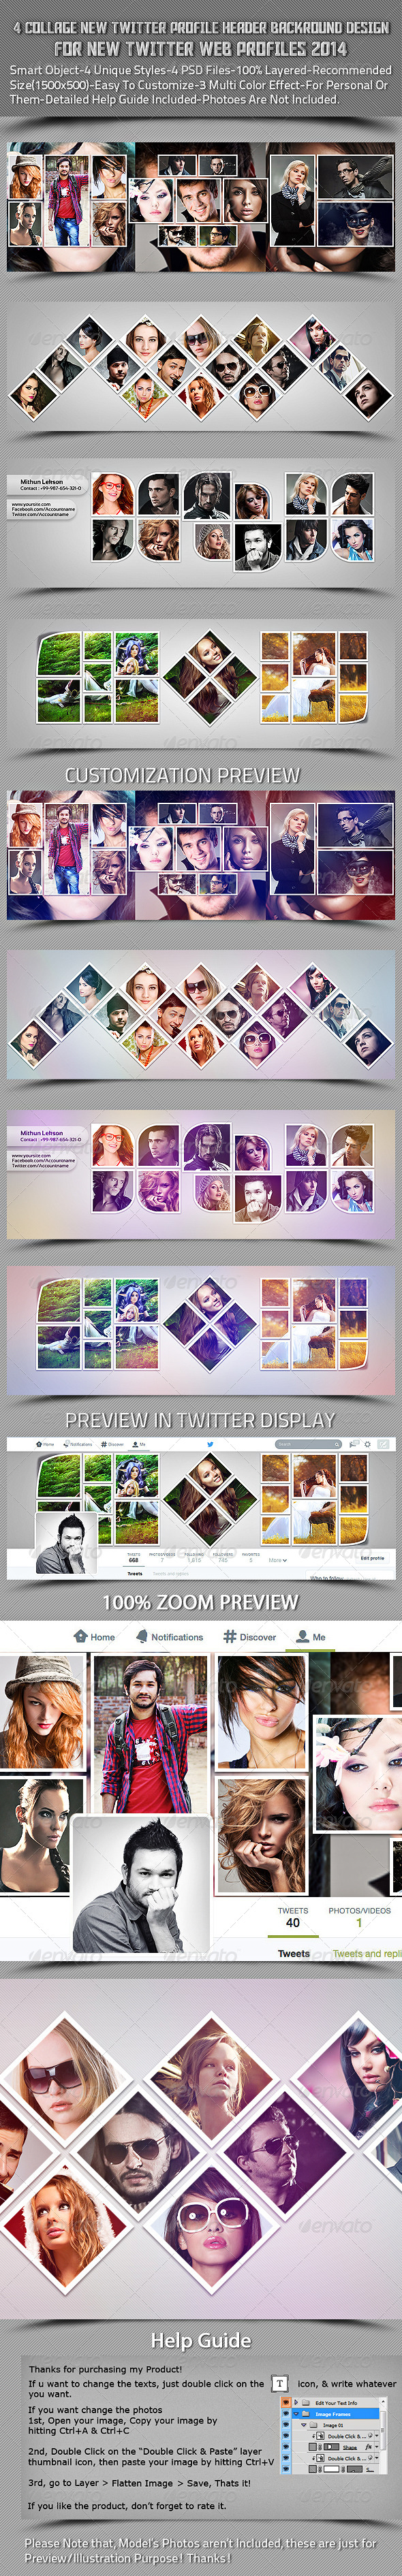 GraphicRiver 4 Collage New Twitter Profile Header Backround 7732752